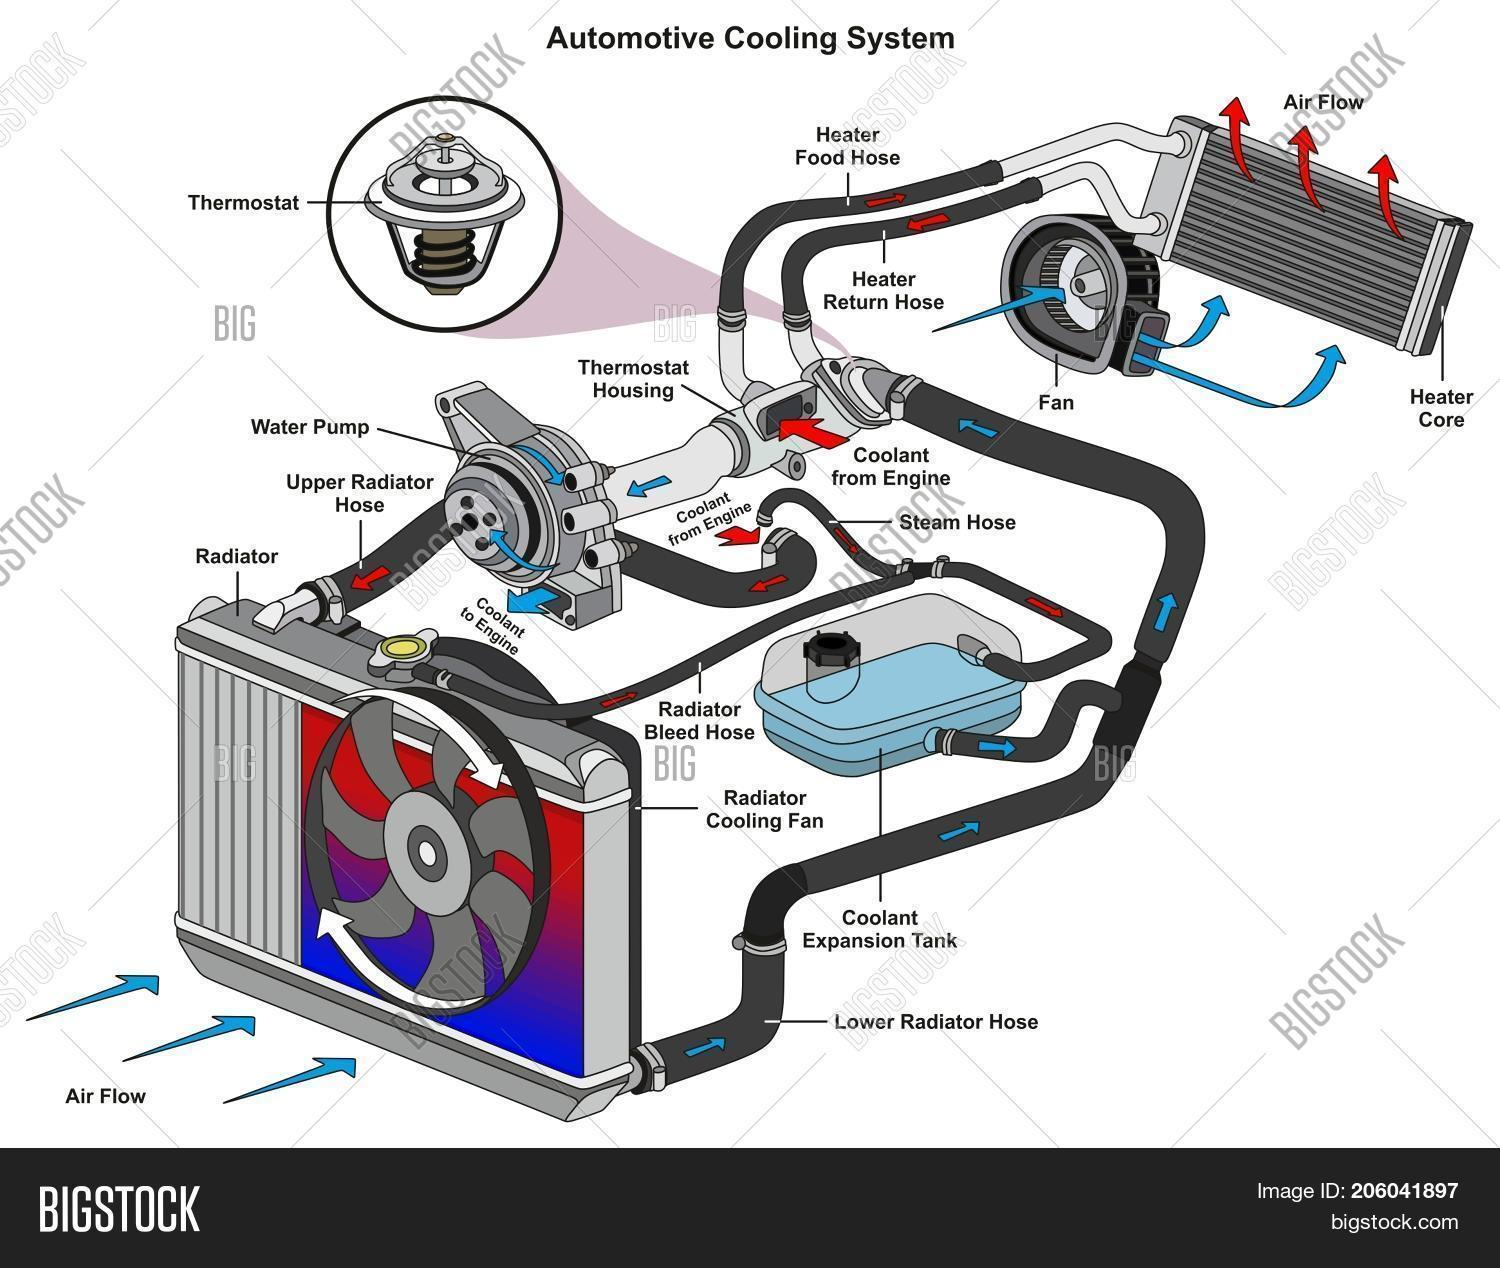 hight resolution of car water pump flow diagram wiring diagram name automotive cooling image photo free trial